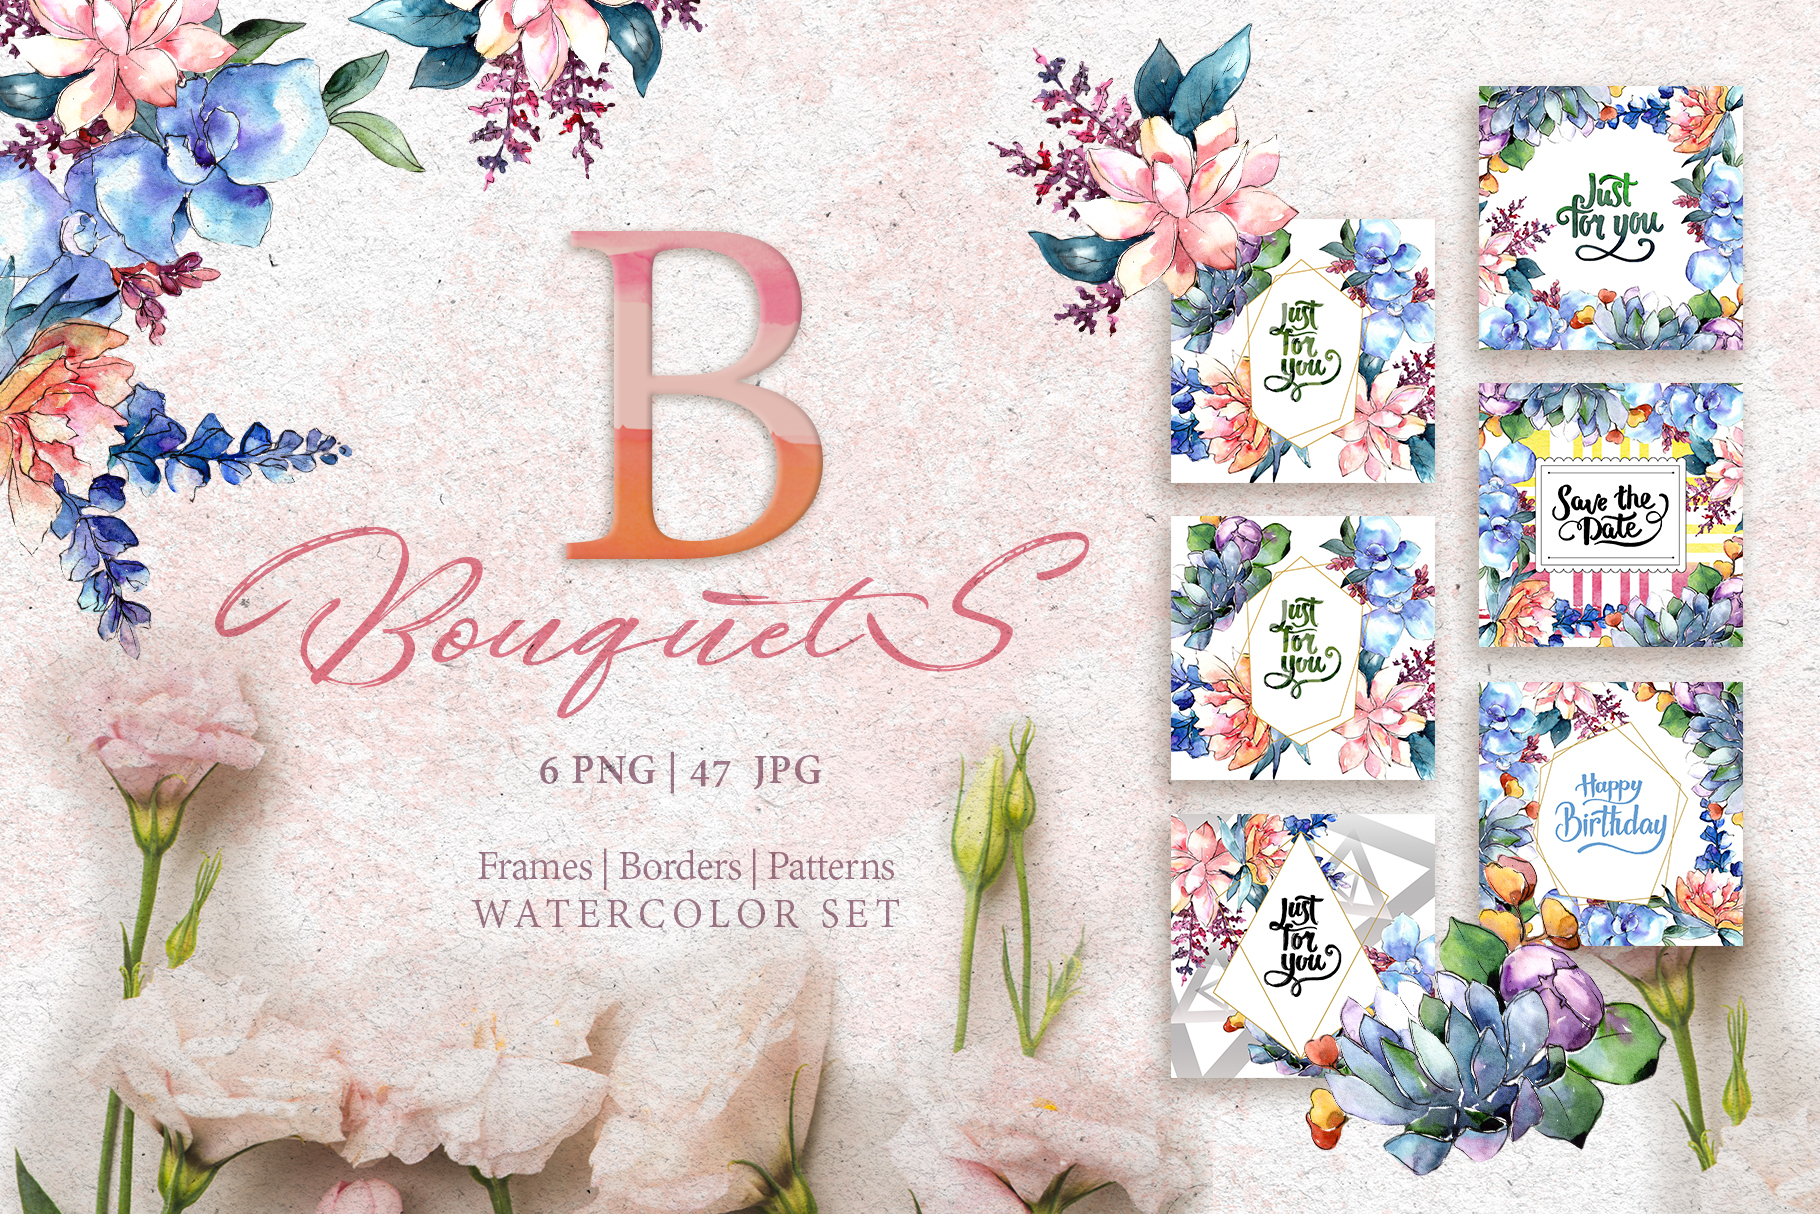 Bouquets flowers set PNG watercolor example image 1